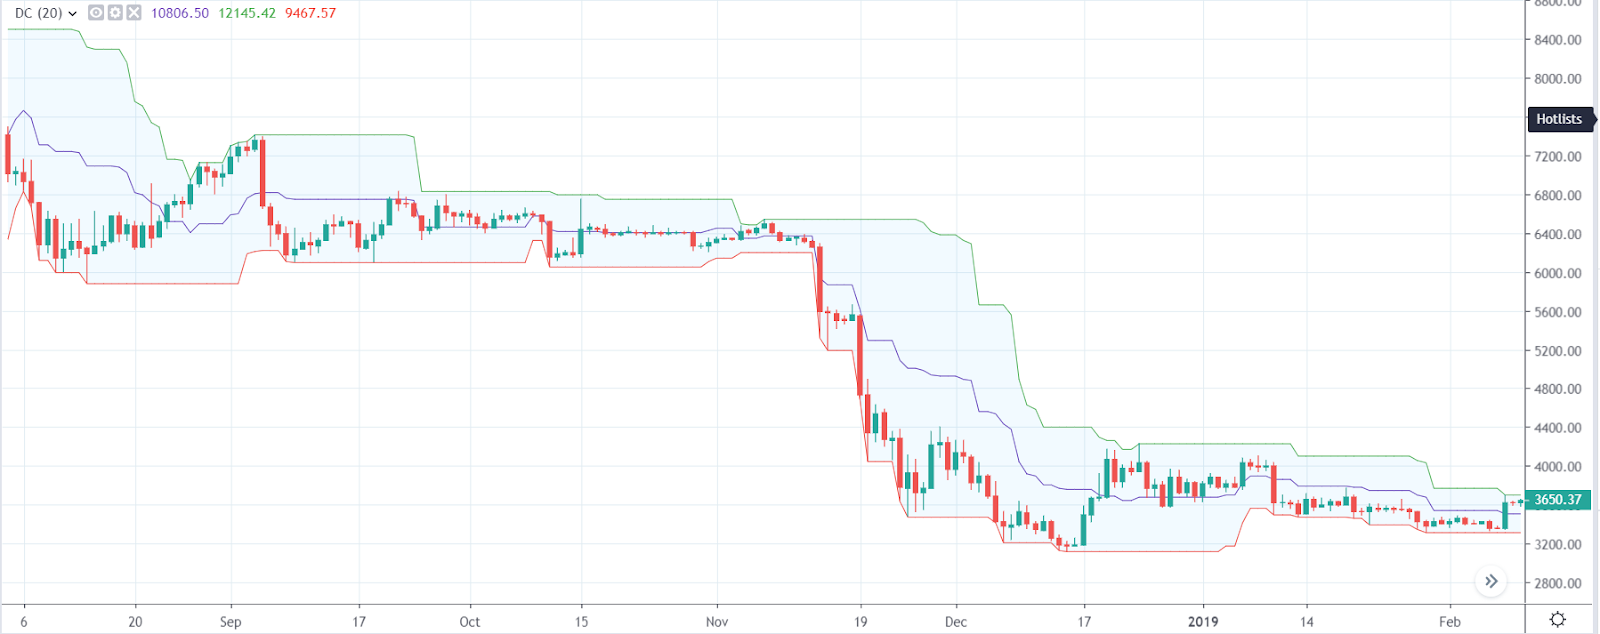 Donchian Channels example on price chart